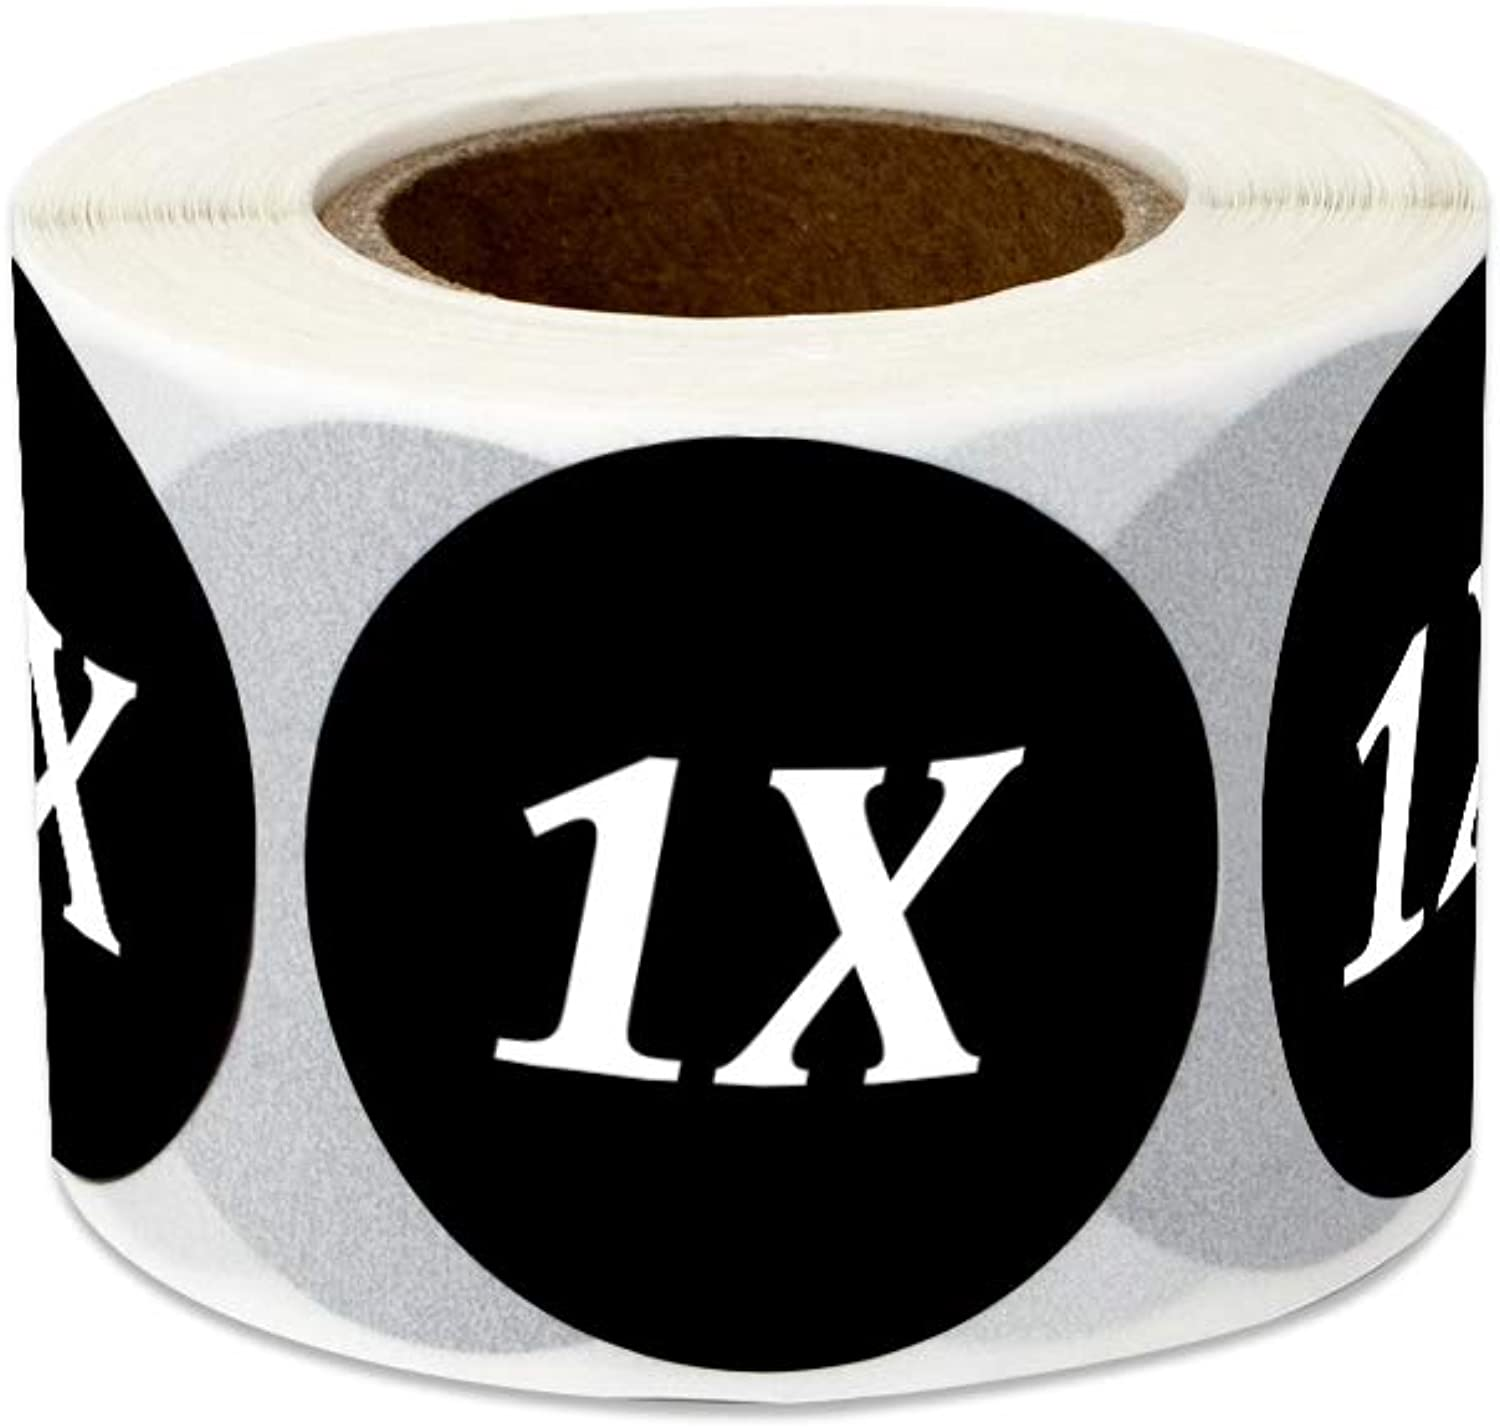 600 Labels - Size 1X Stickers for Clothing Sizing Retail Shops Apparel Extra-Large (1.25 Inch Round Black - 2 Rolls)